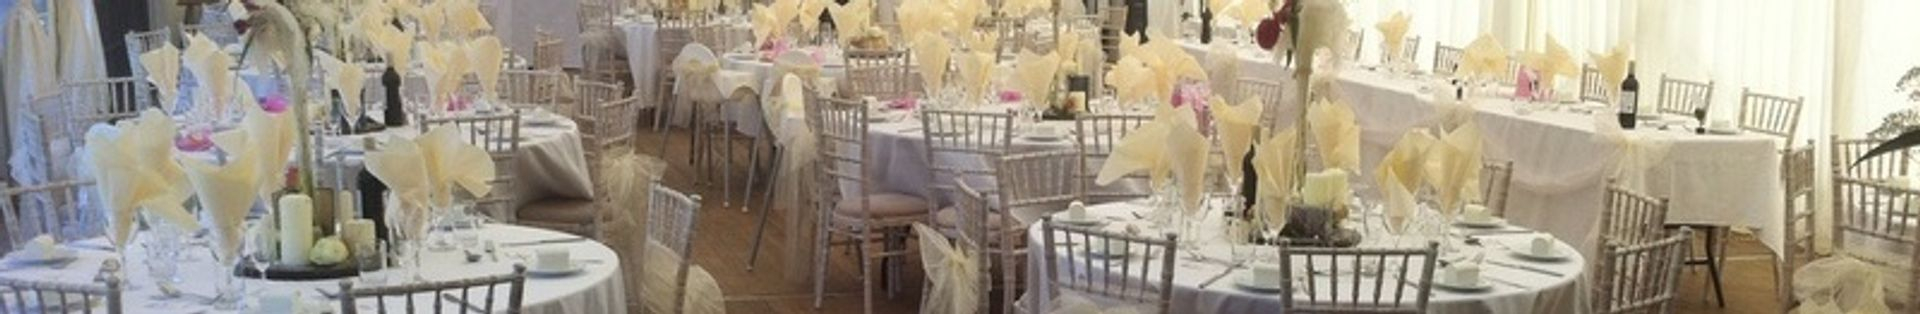 Formal and informal wedding receptions catered for